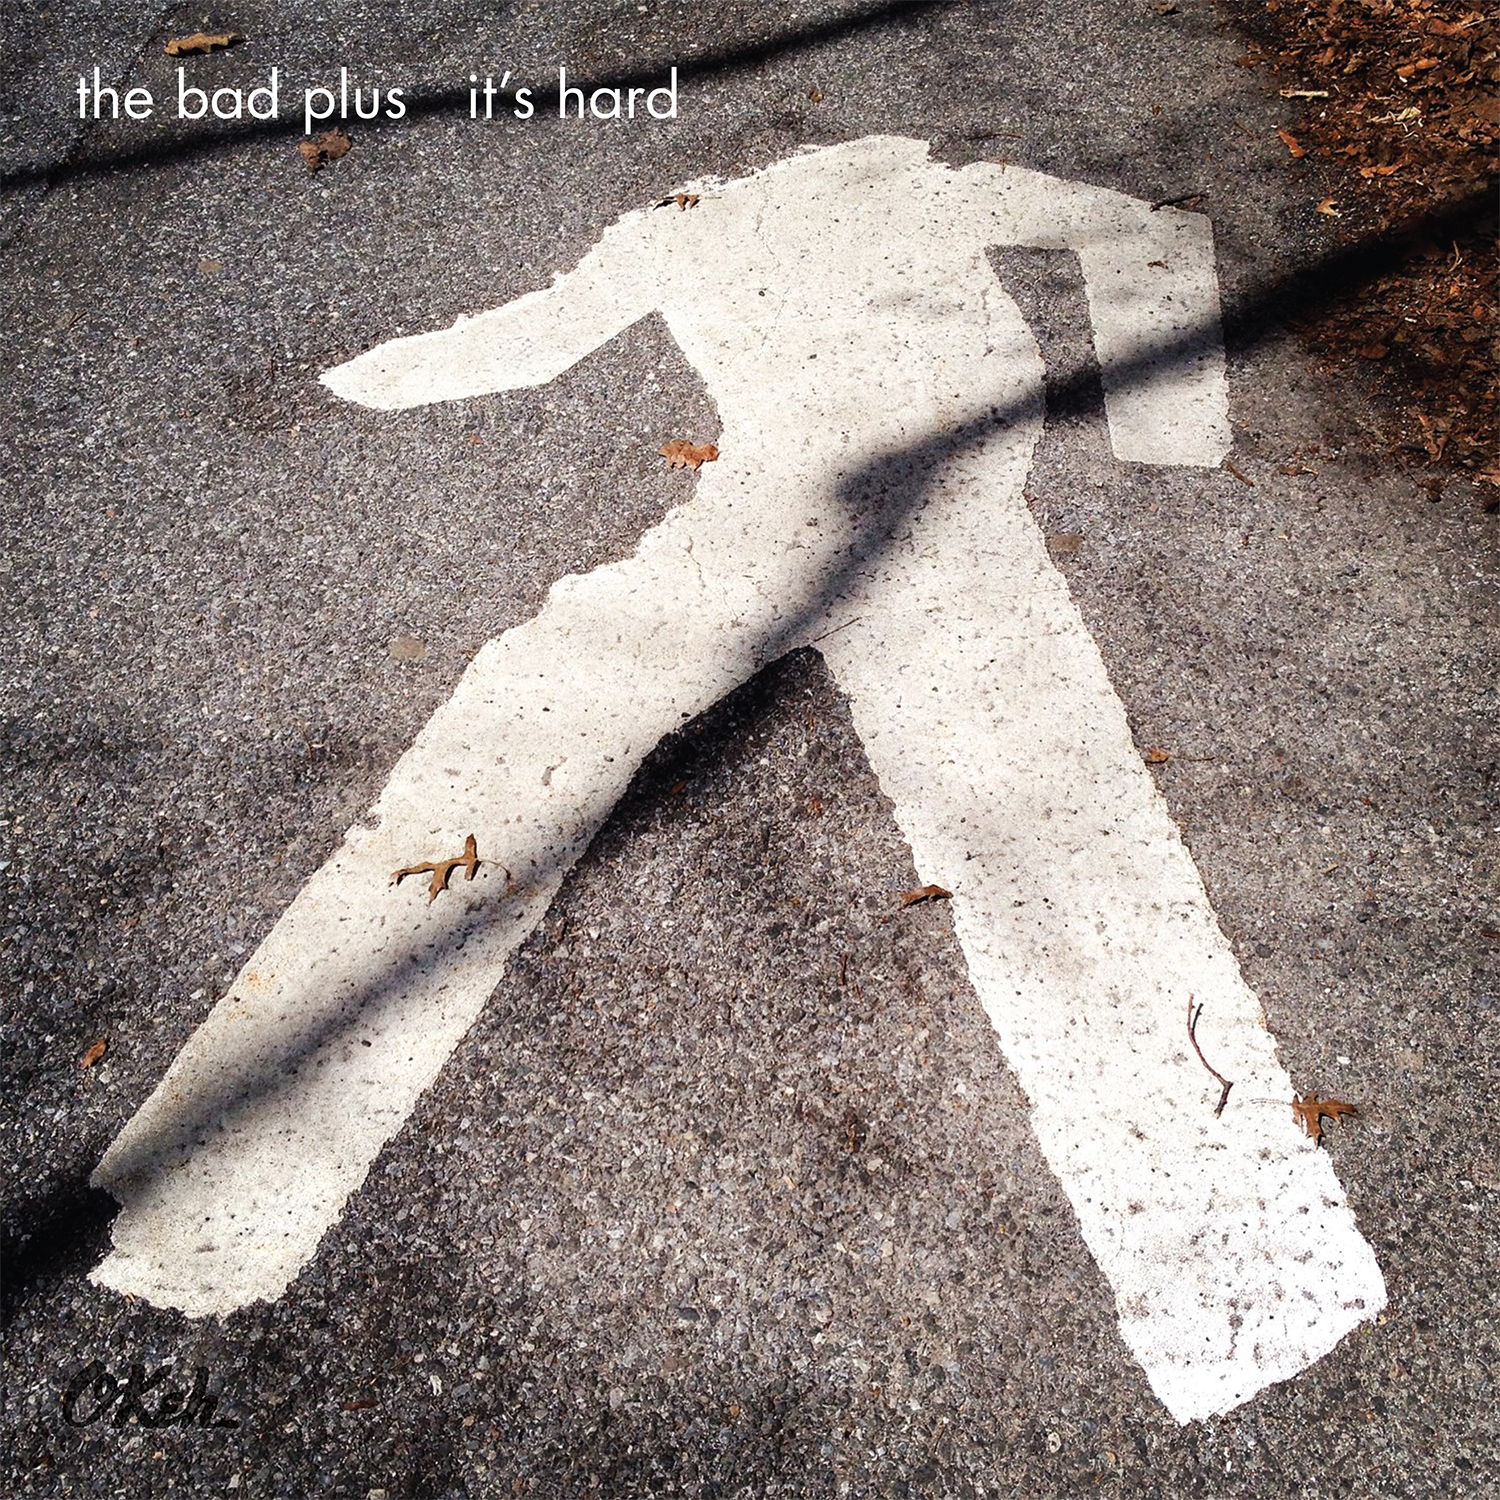 THE BAD PLUS RETURN TO THEIR ROOTS ON IT'S HARD | Out Now